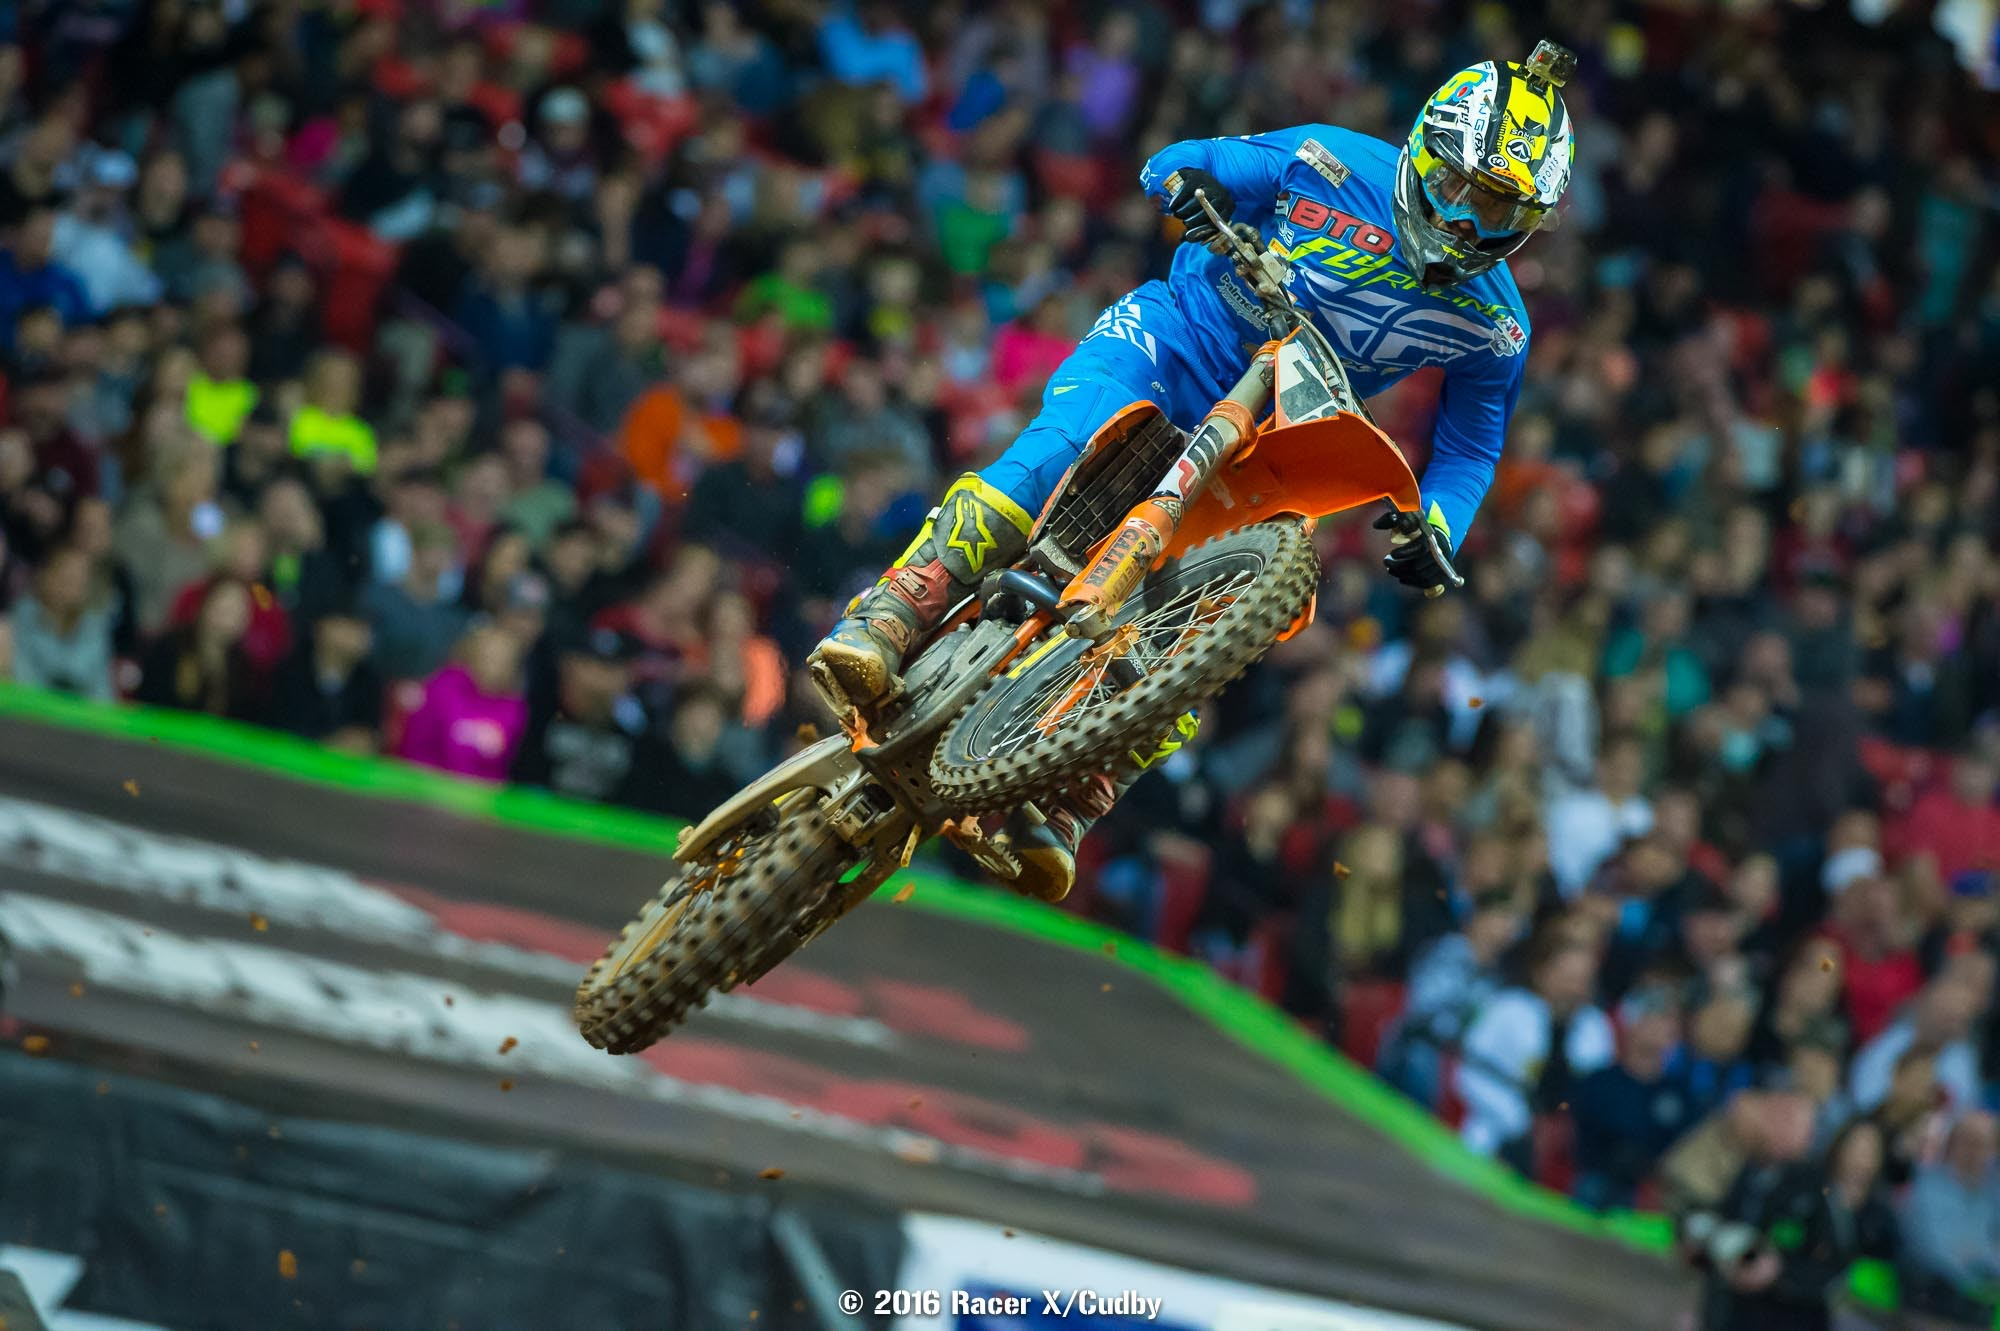 Davi Millsaps was ailing...and pulled off his best finish of the season with fourth.